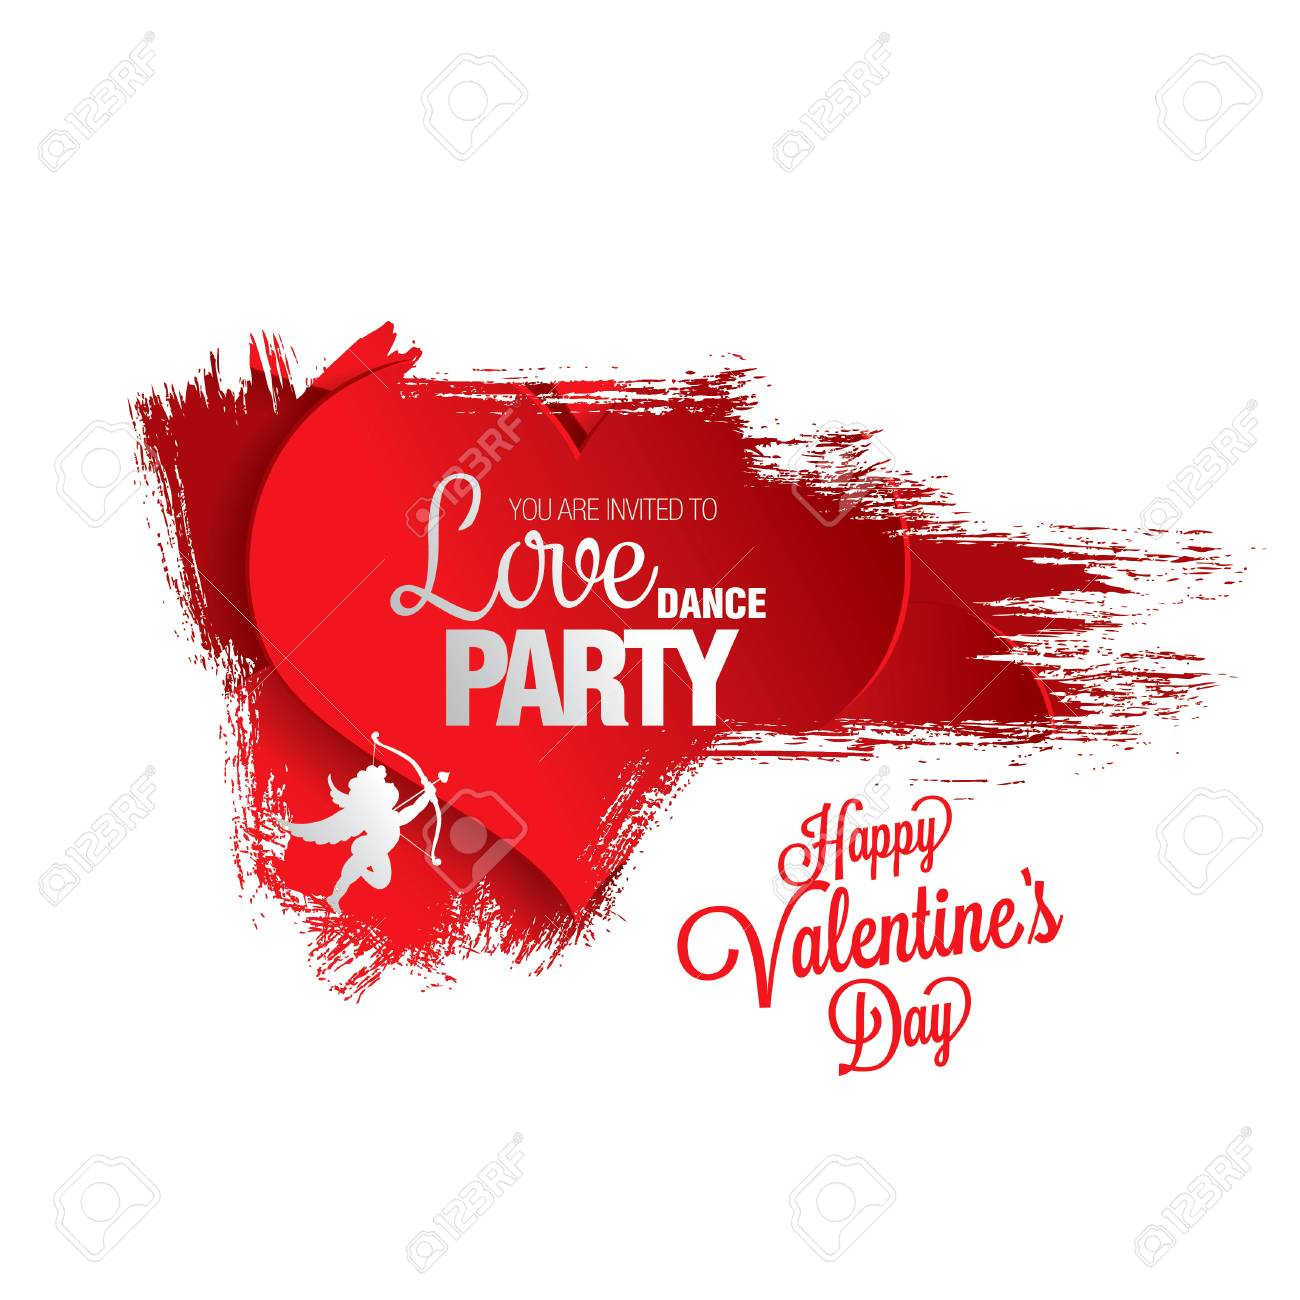 Valentine S Day Poster Template Design Royalty Free Cliparts